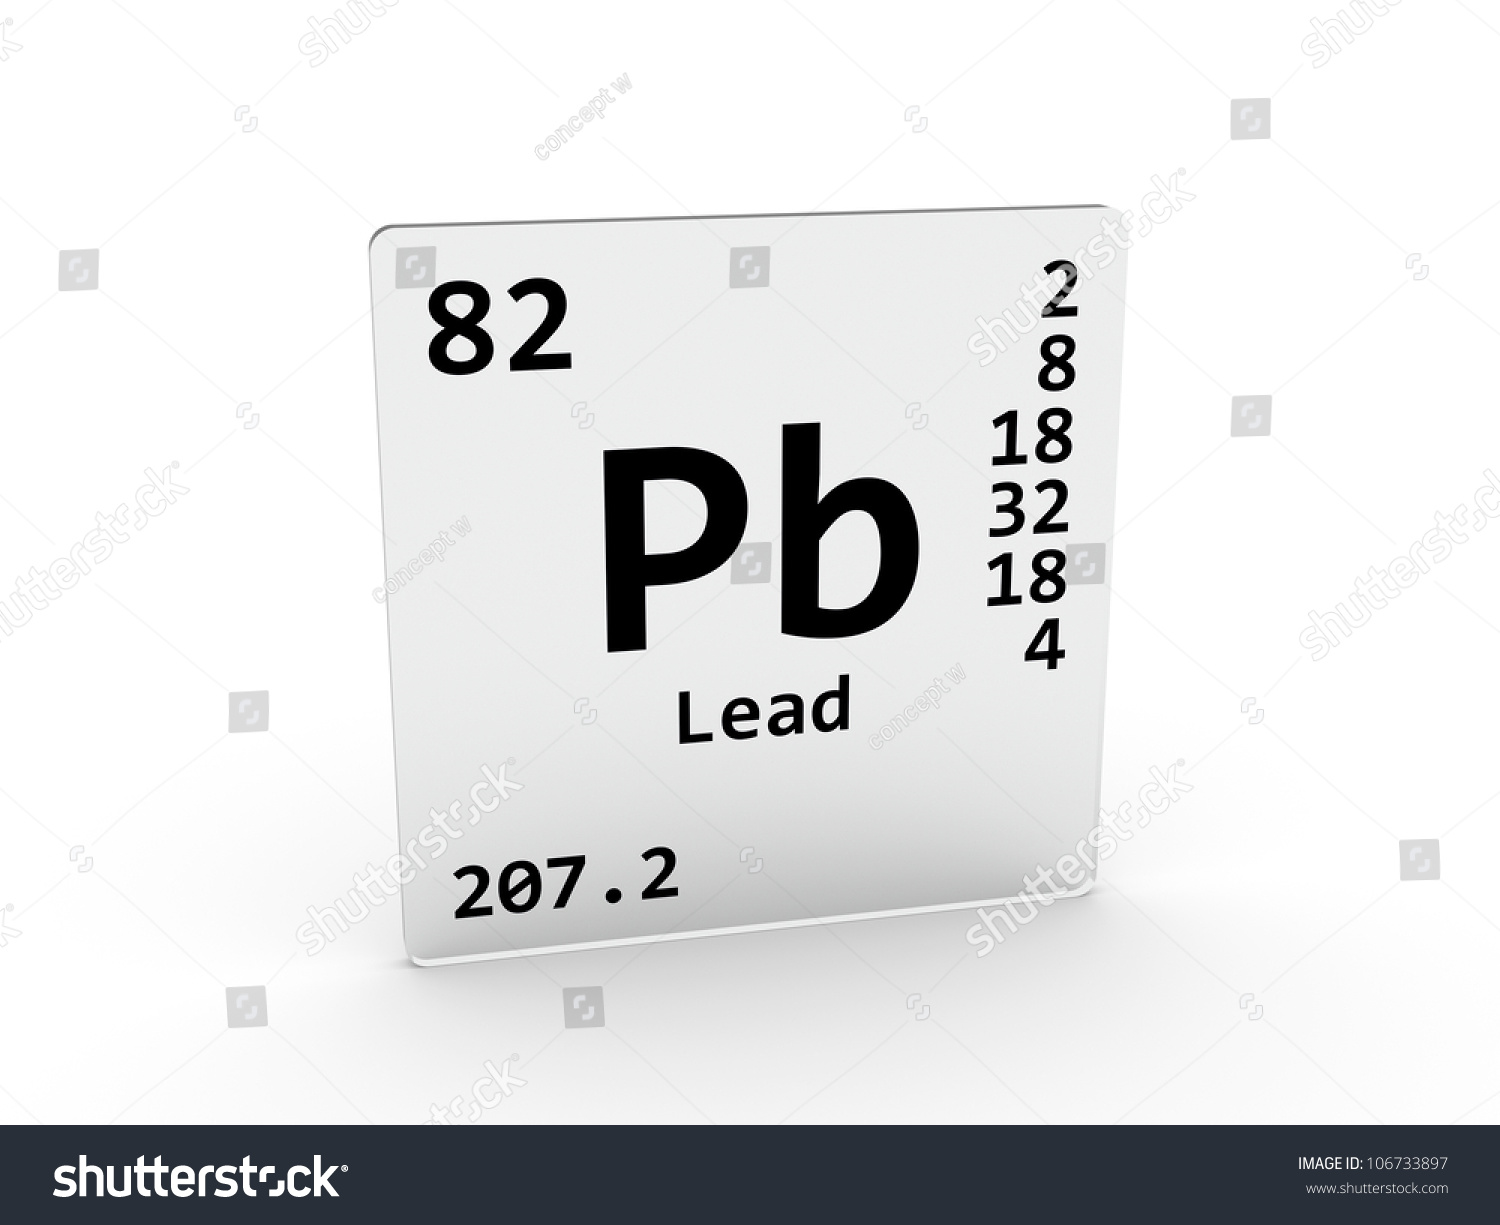 Lead symbol pb element periodic table stock illustration 106733897 lead symbol pb element of the periodic table urtaz Image collections